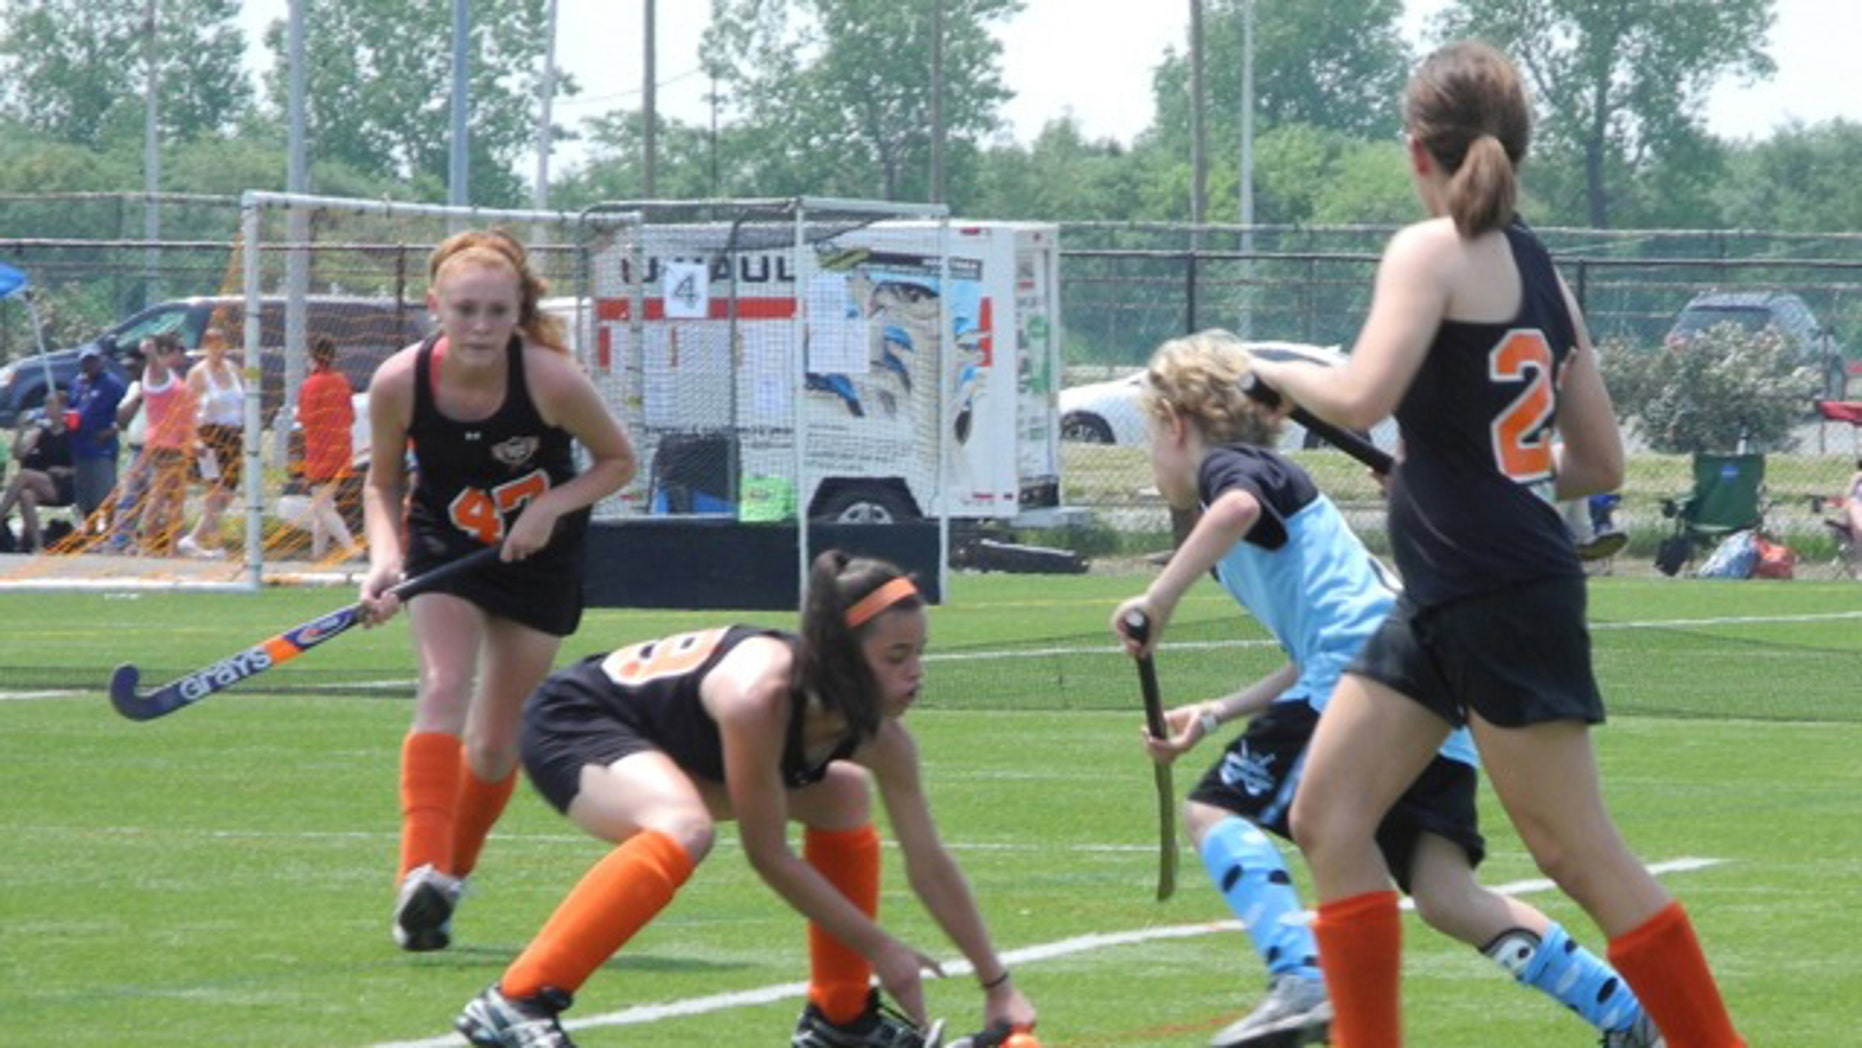 In this undated photo provided by Andrew Pilaro, Keeling Pilaro, 13, center right, plays offence as as a member of the East End Field Hockey club in New York.